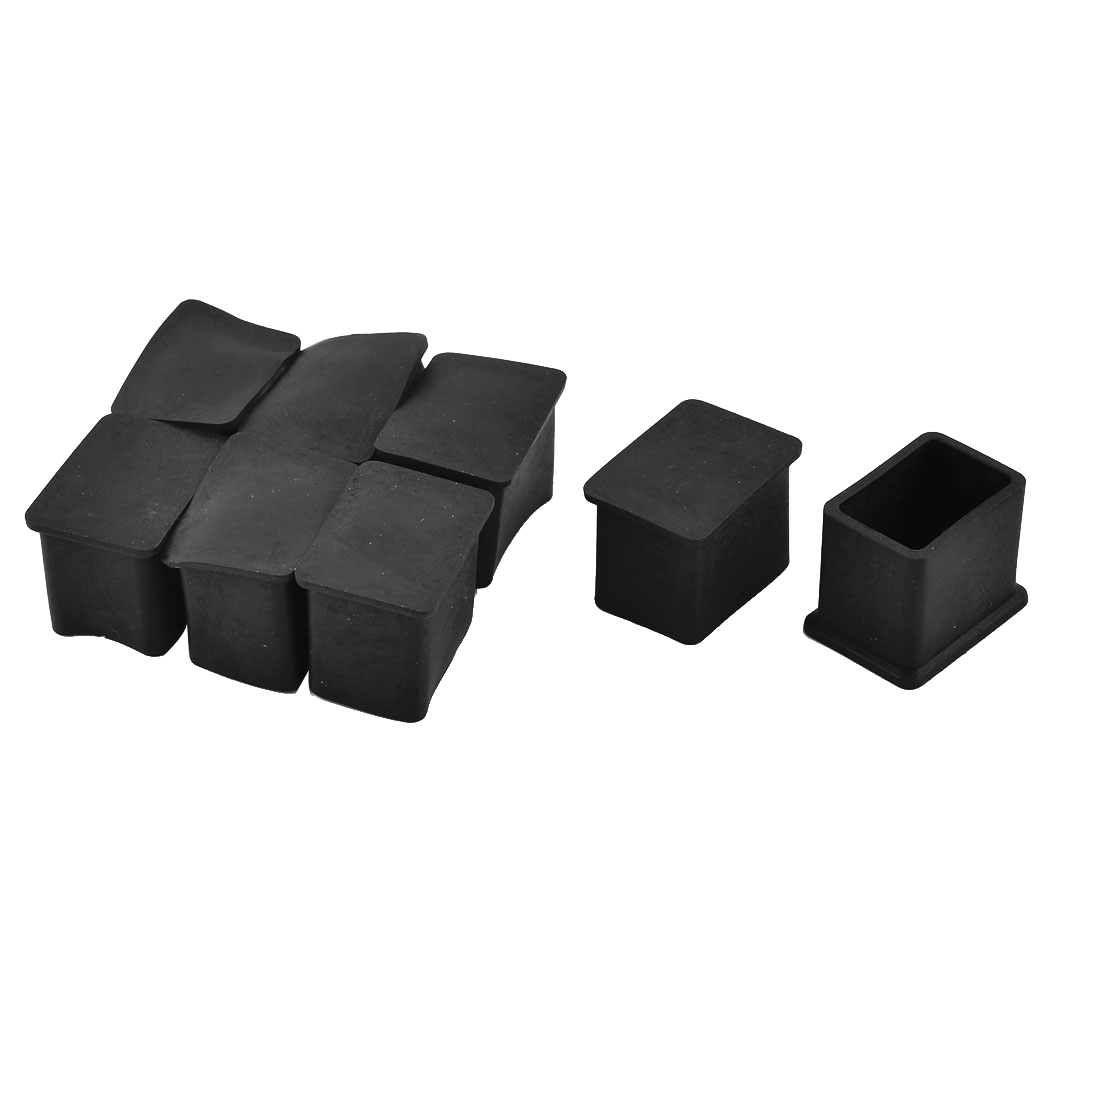 28mm x 19mm Rubber Square Shaped Furniture Chair Table Foot Cover Caps Black 8pcs